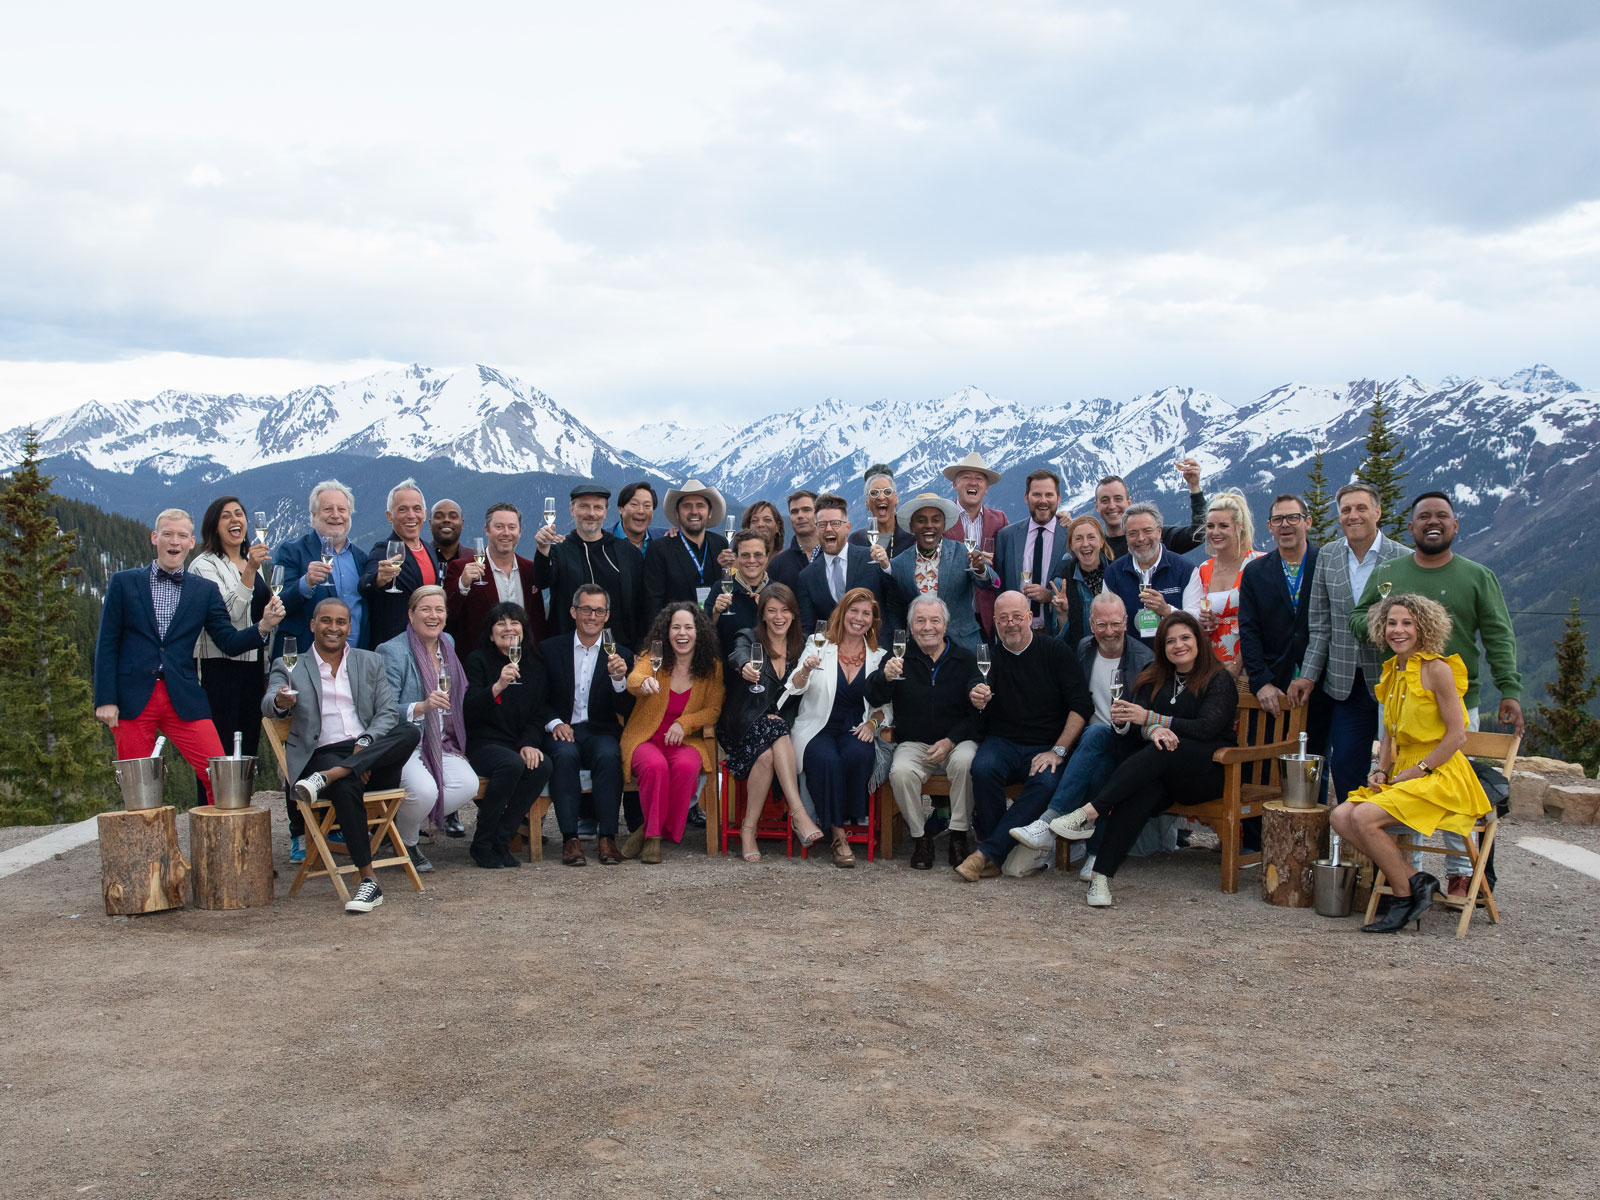 The 37th Annual mkgalleryamp;amp; Wine Classic in Aspen Was the Most Star-Powered Yet